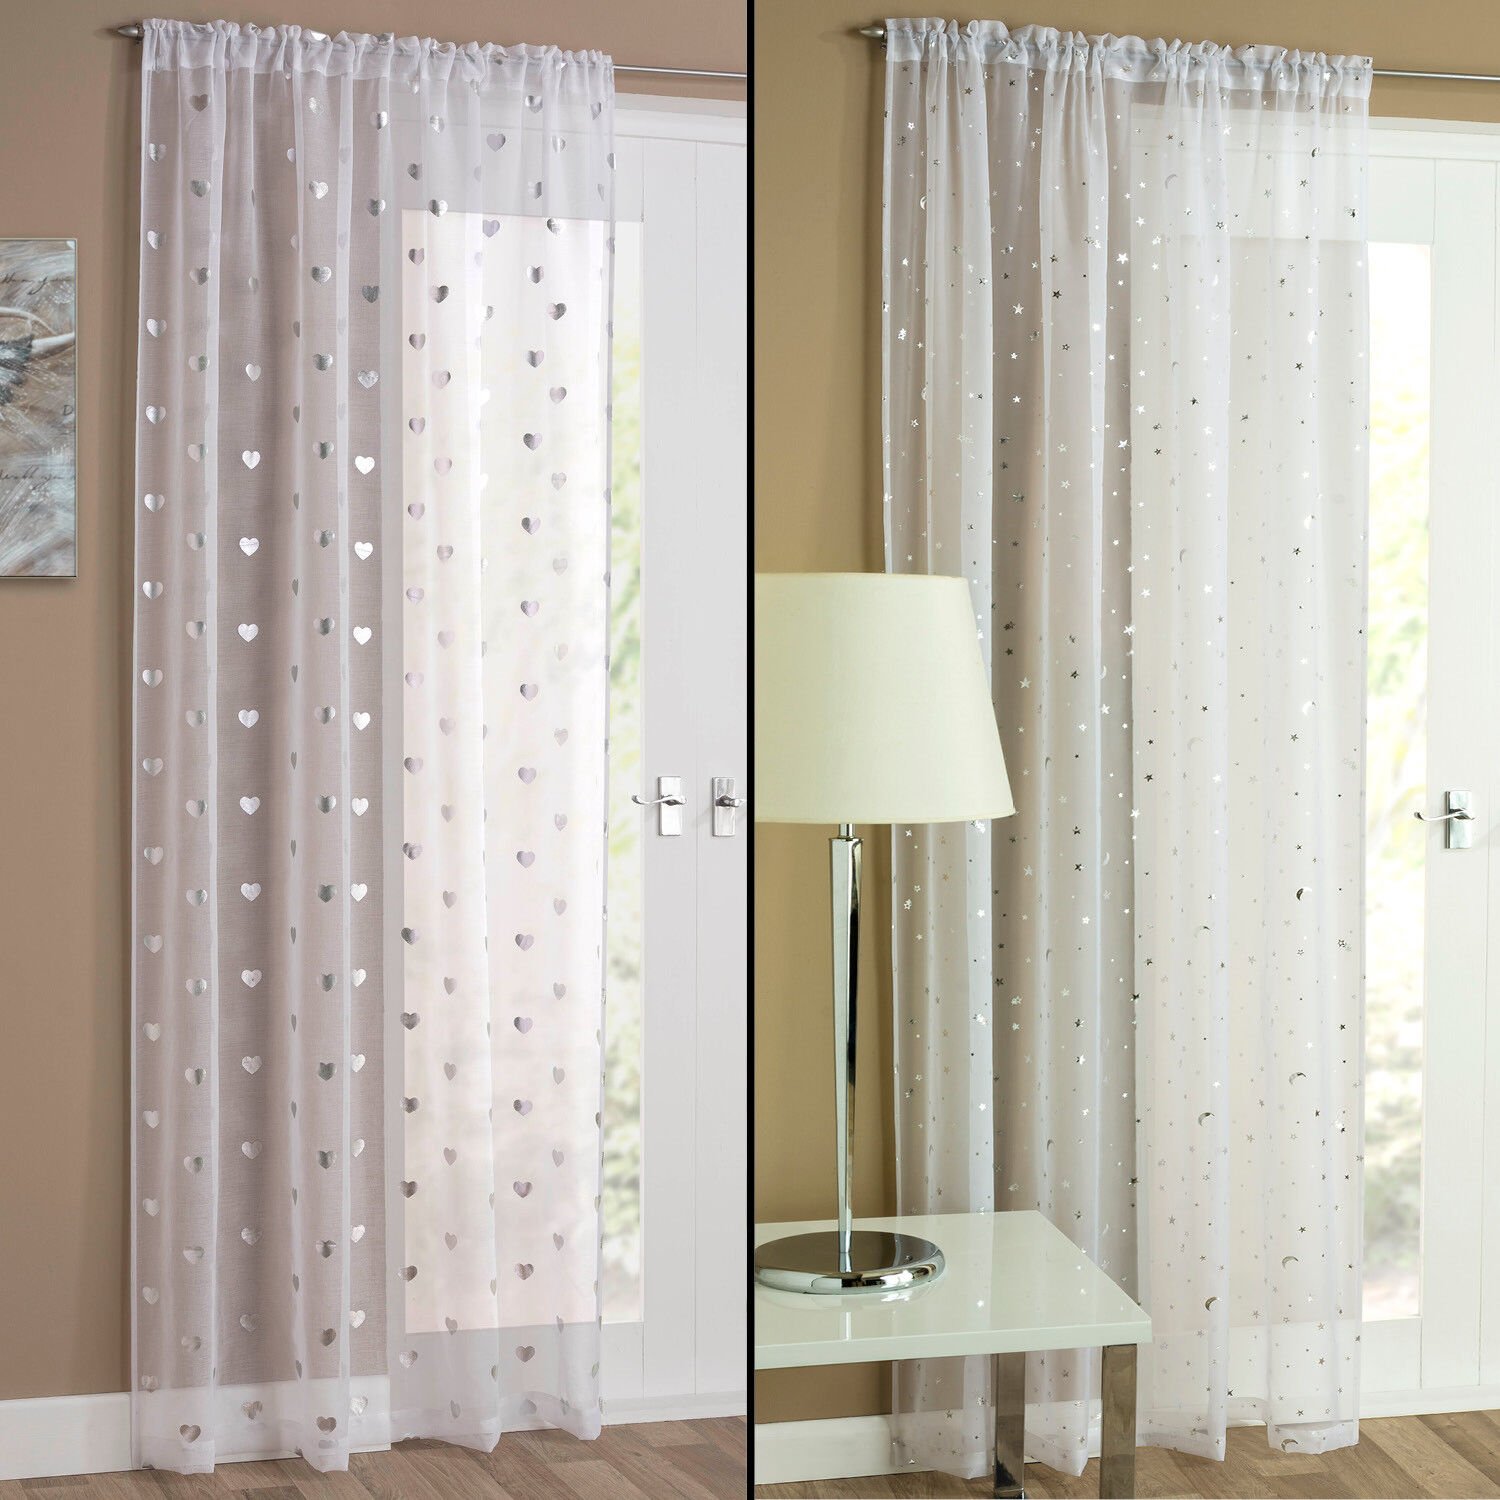 tyrone sheer net curtains with metallic foil silver. Black Bedroom Furniture Sets. Home Design Ideas